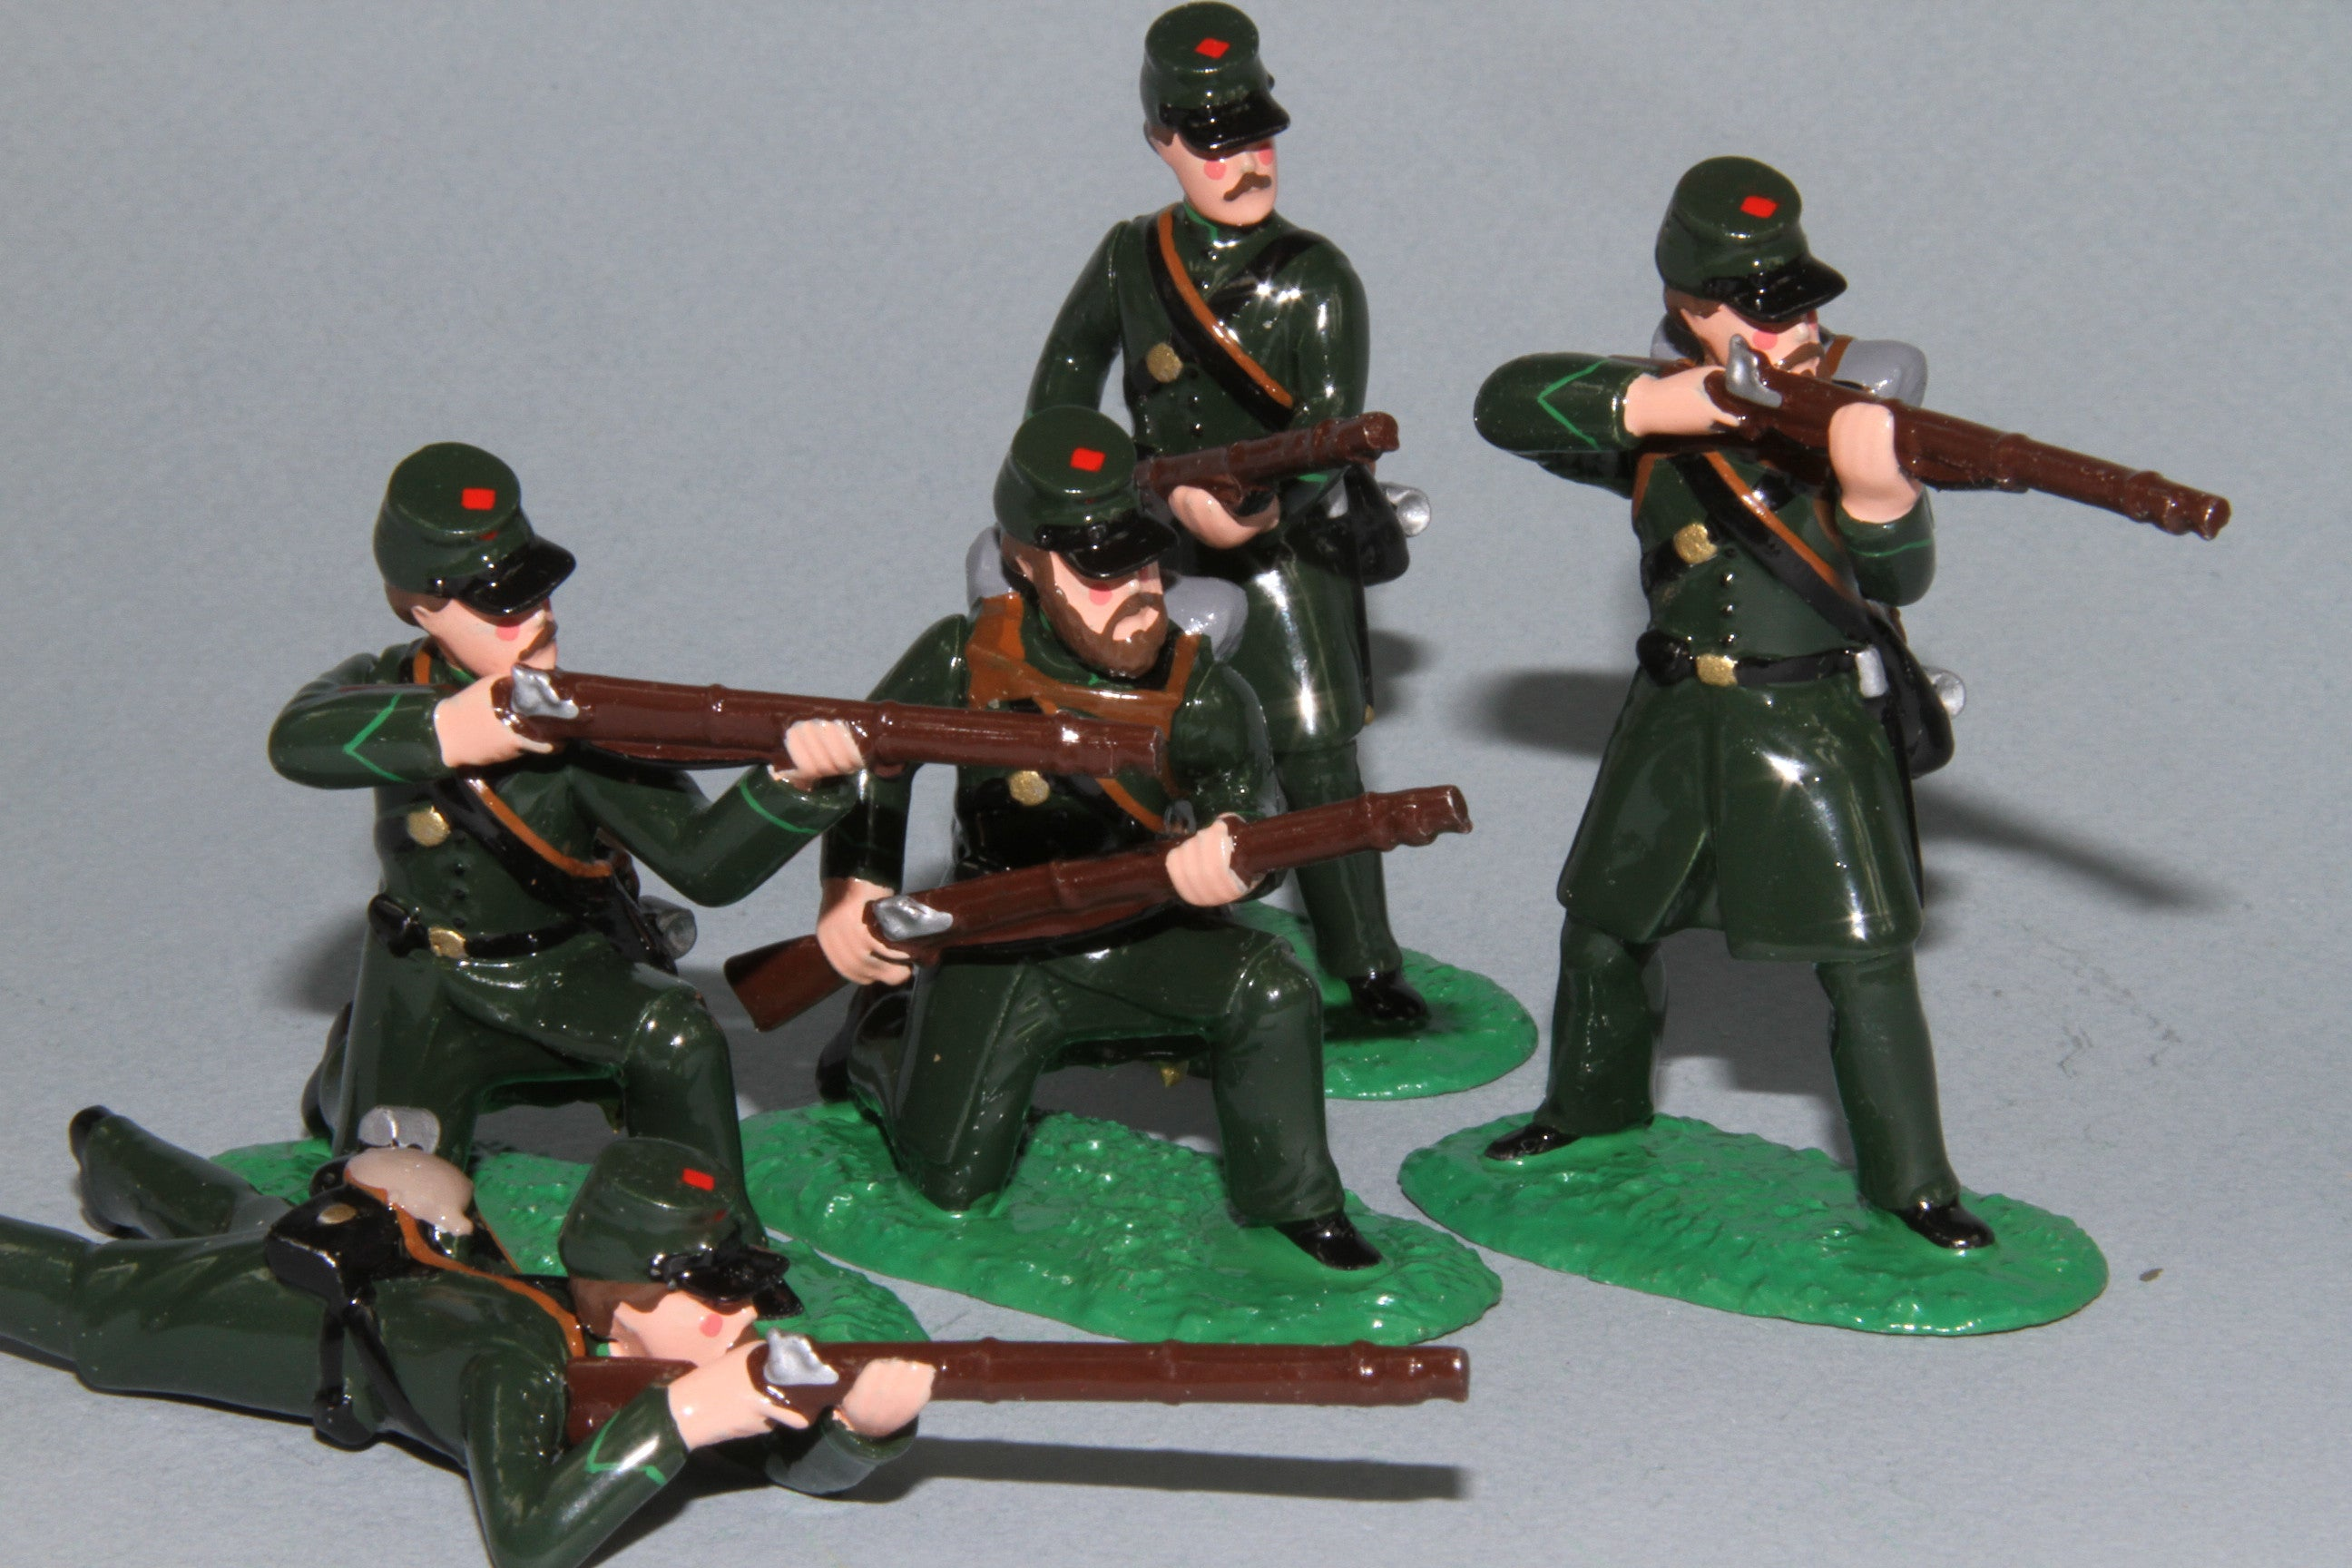 ACW02 - ACW, Berdan's Sharpshooters in action from Regal Toy Soldiers